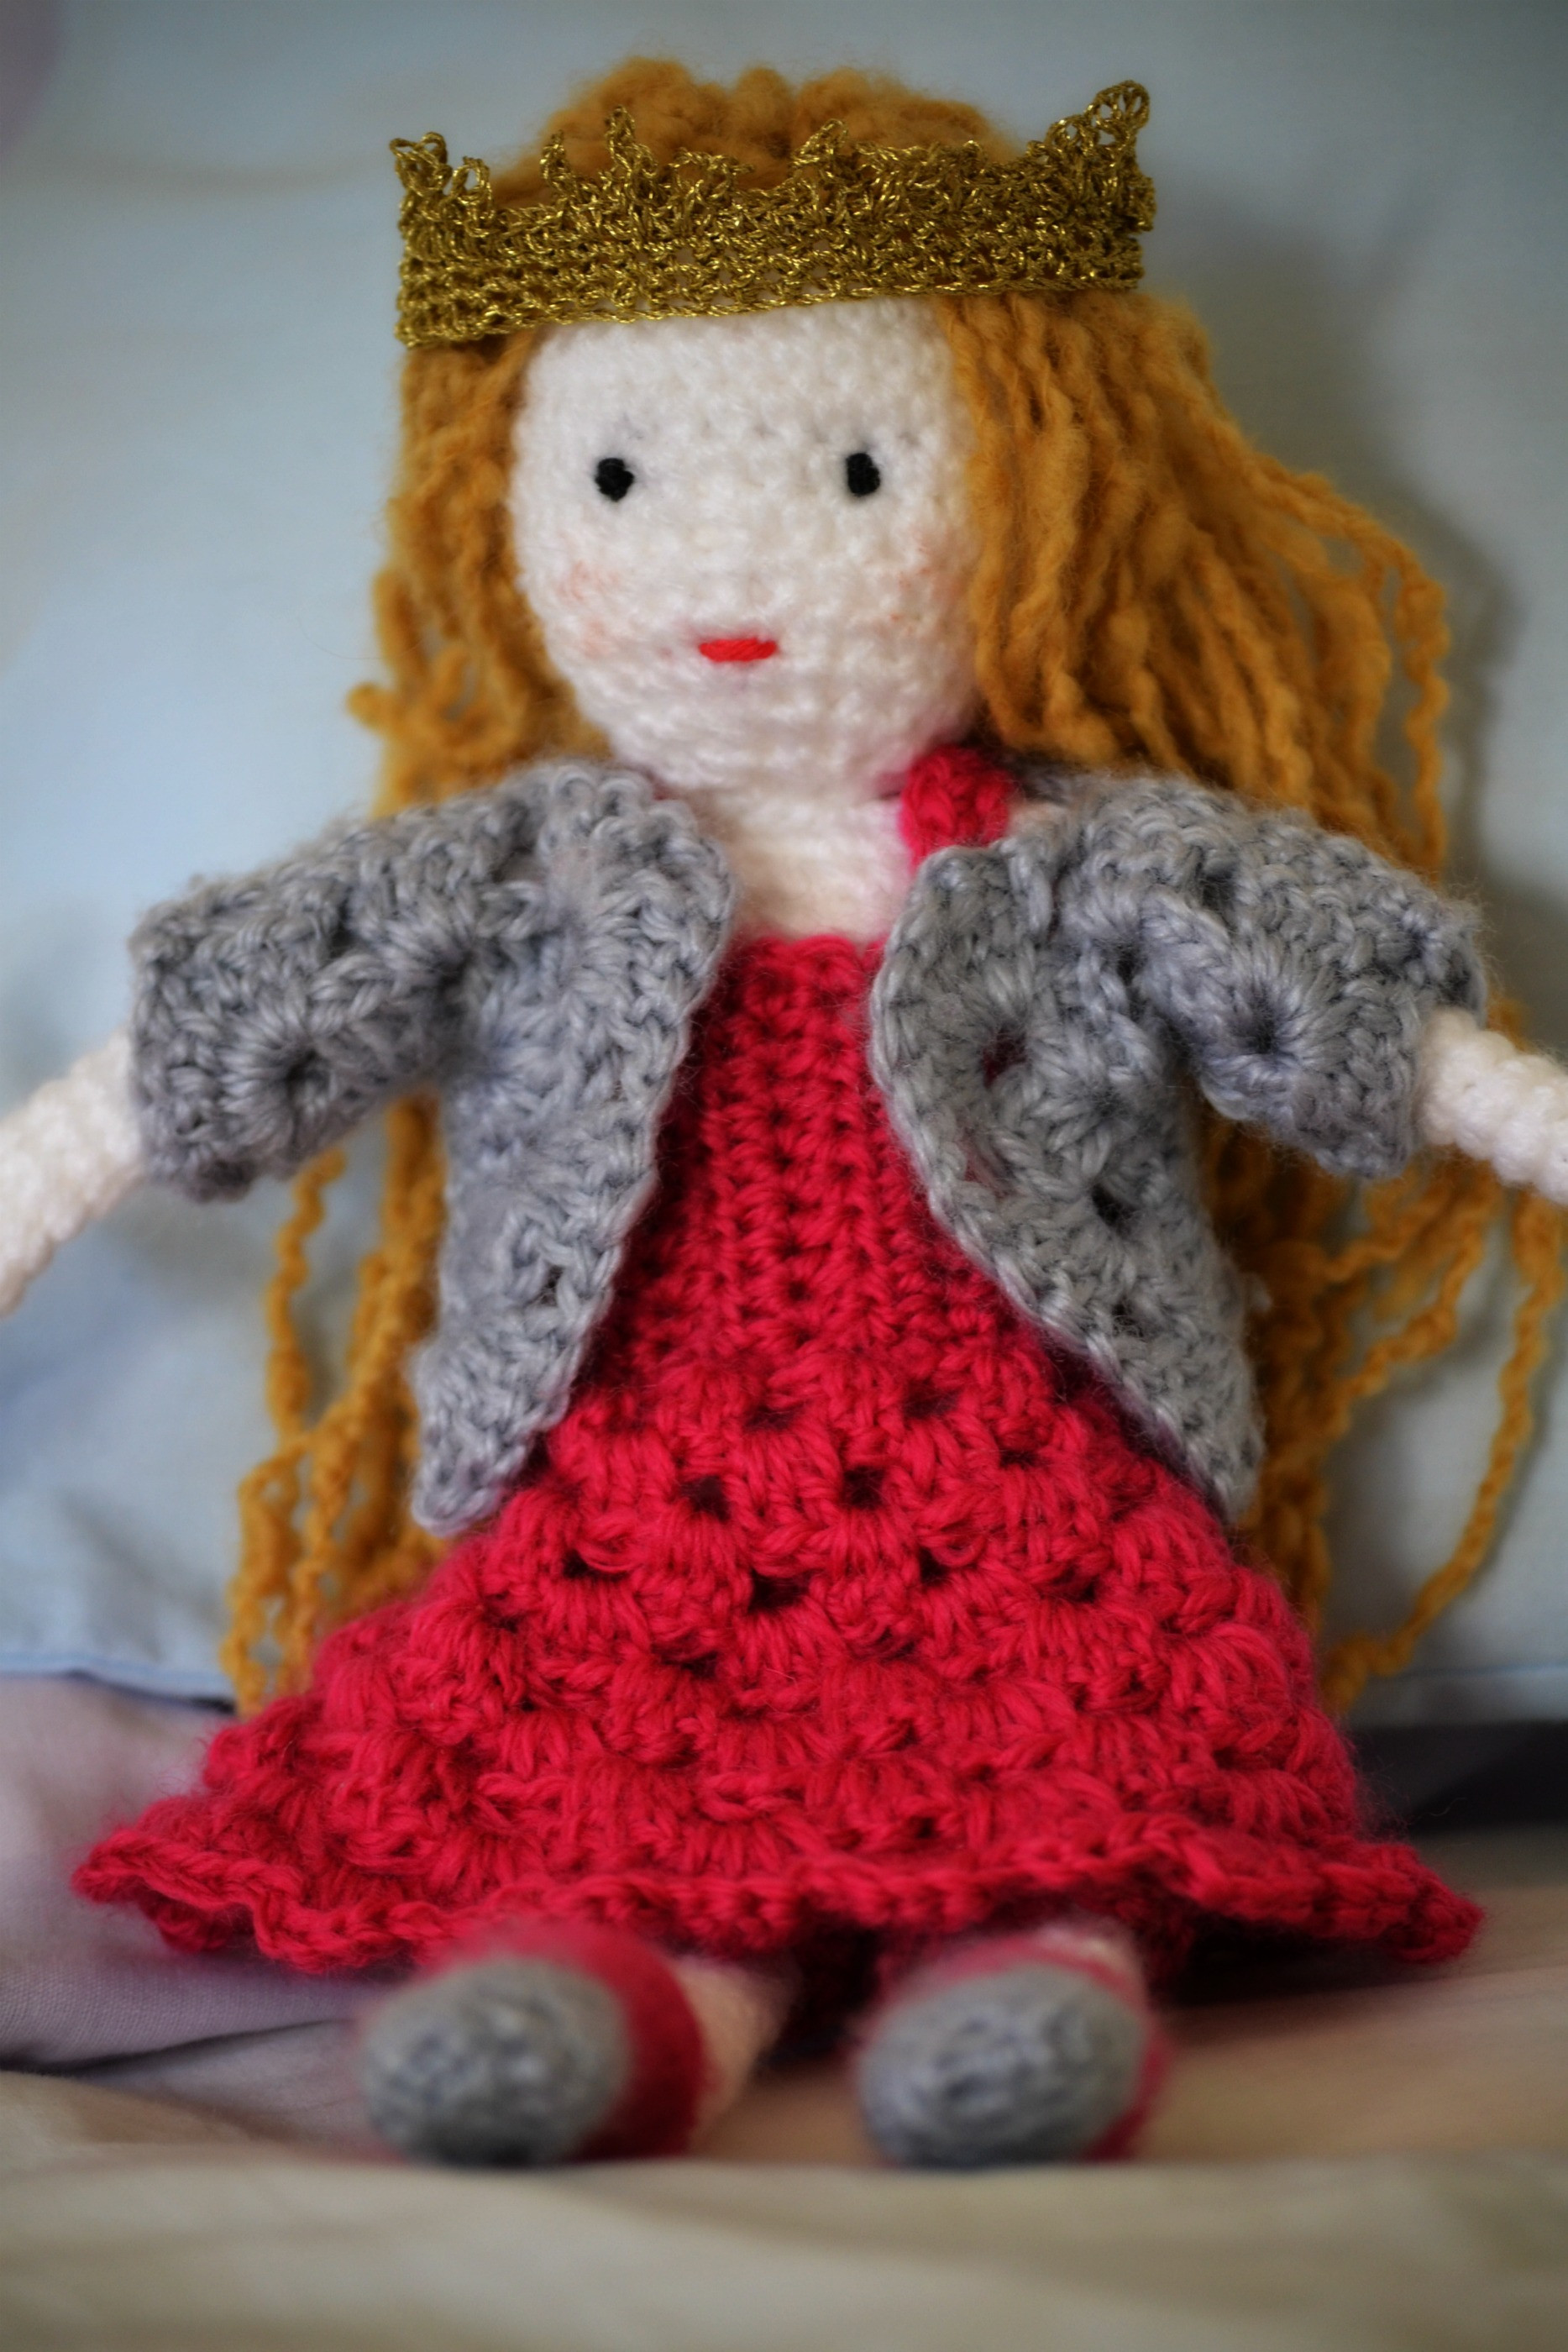 Crochet Doll Beautiful Princess Poppy – the Green Dragonfly Of Delightful 47 Pictures Crochet Doll